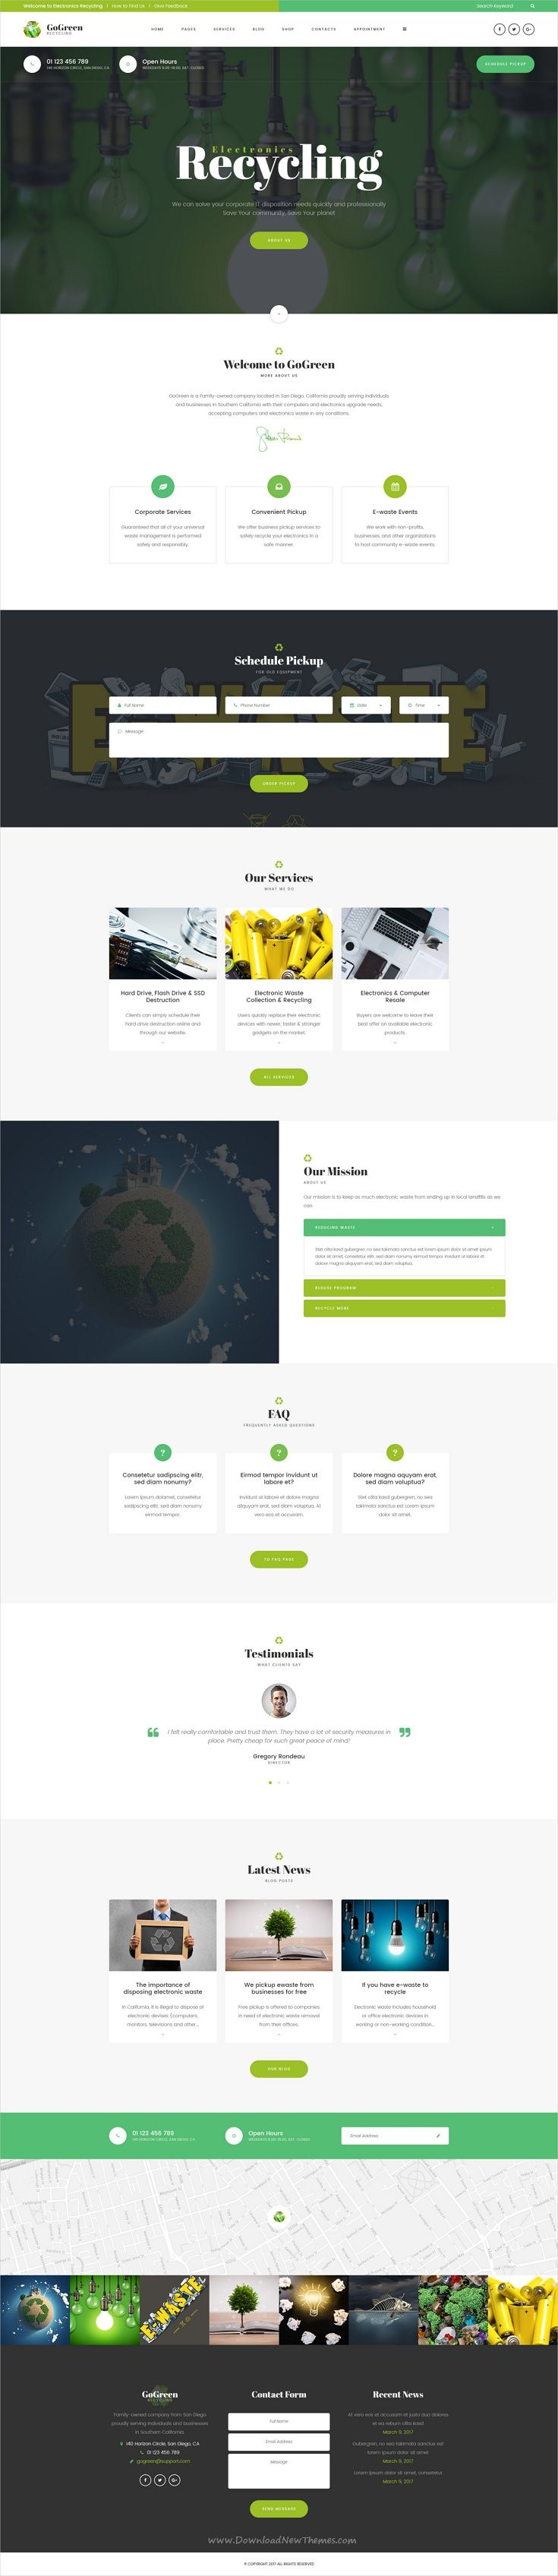 GoGreen is clean and modern design #Photoshop template for #waste management and #recycling company website download now > https://themeforest.net/item/gogreen-waste-management-and-recycling-psd-template/19944058?ref=Datasata